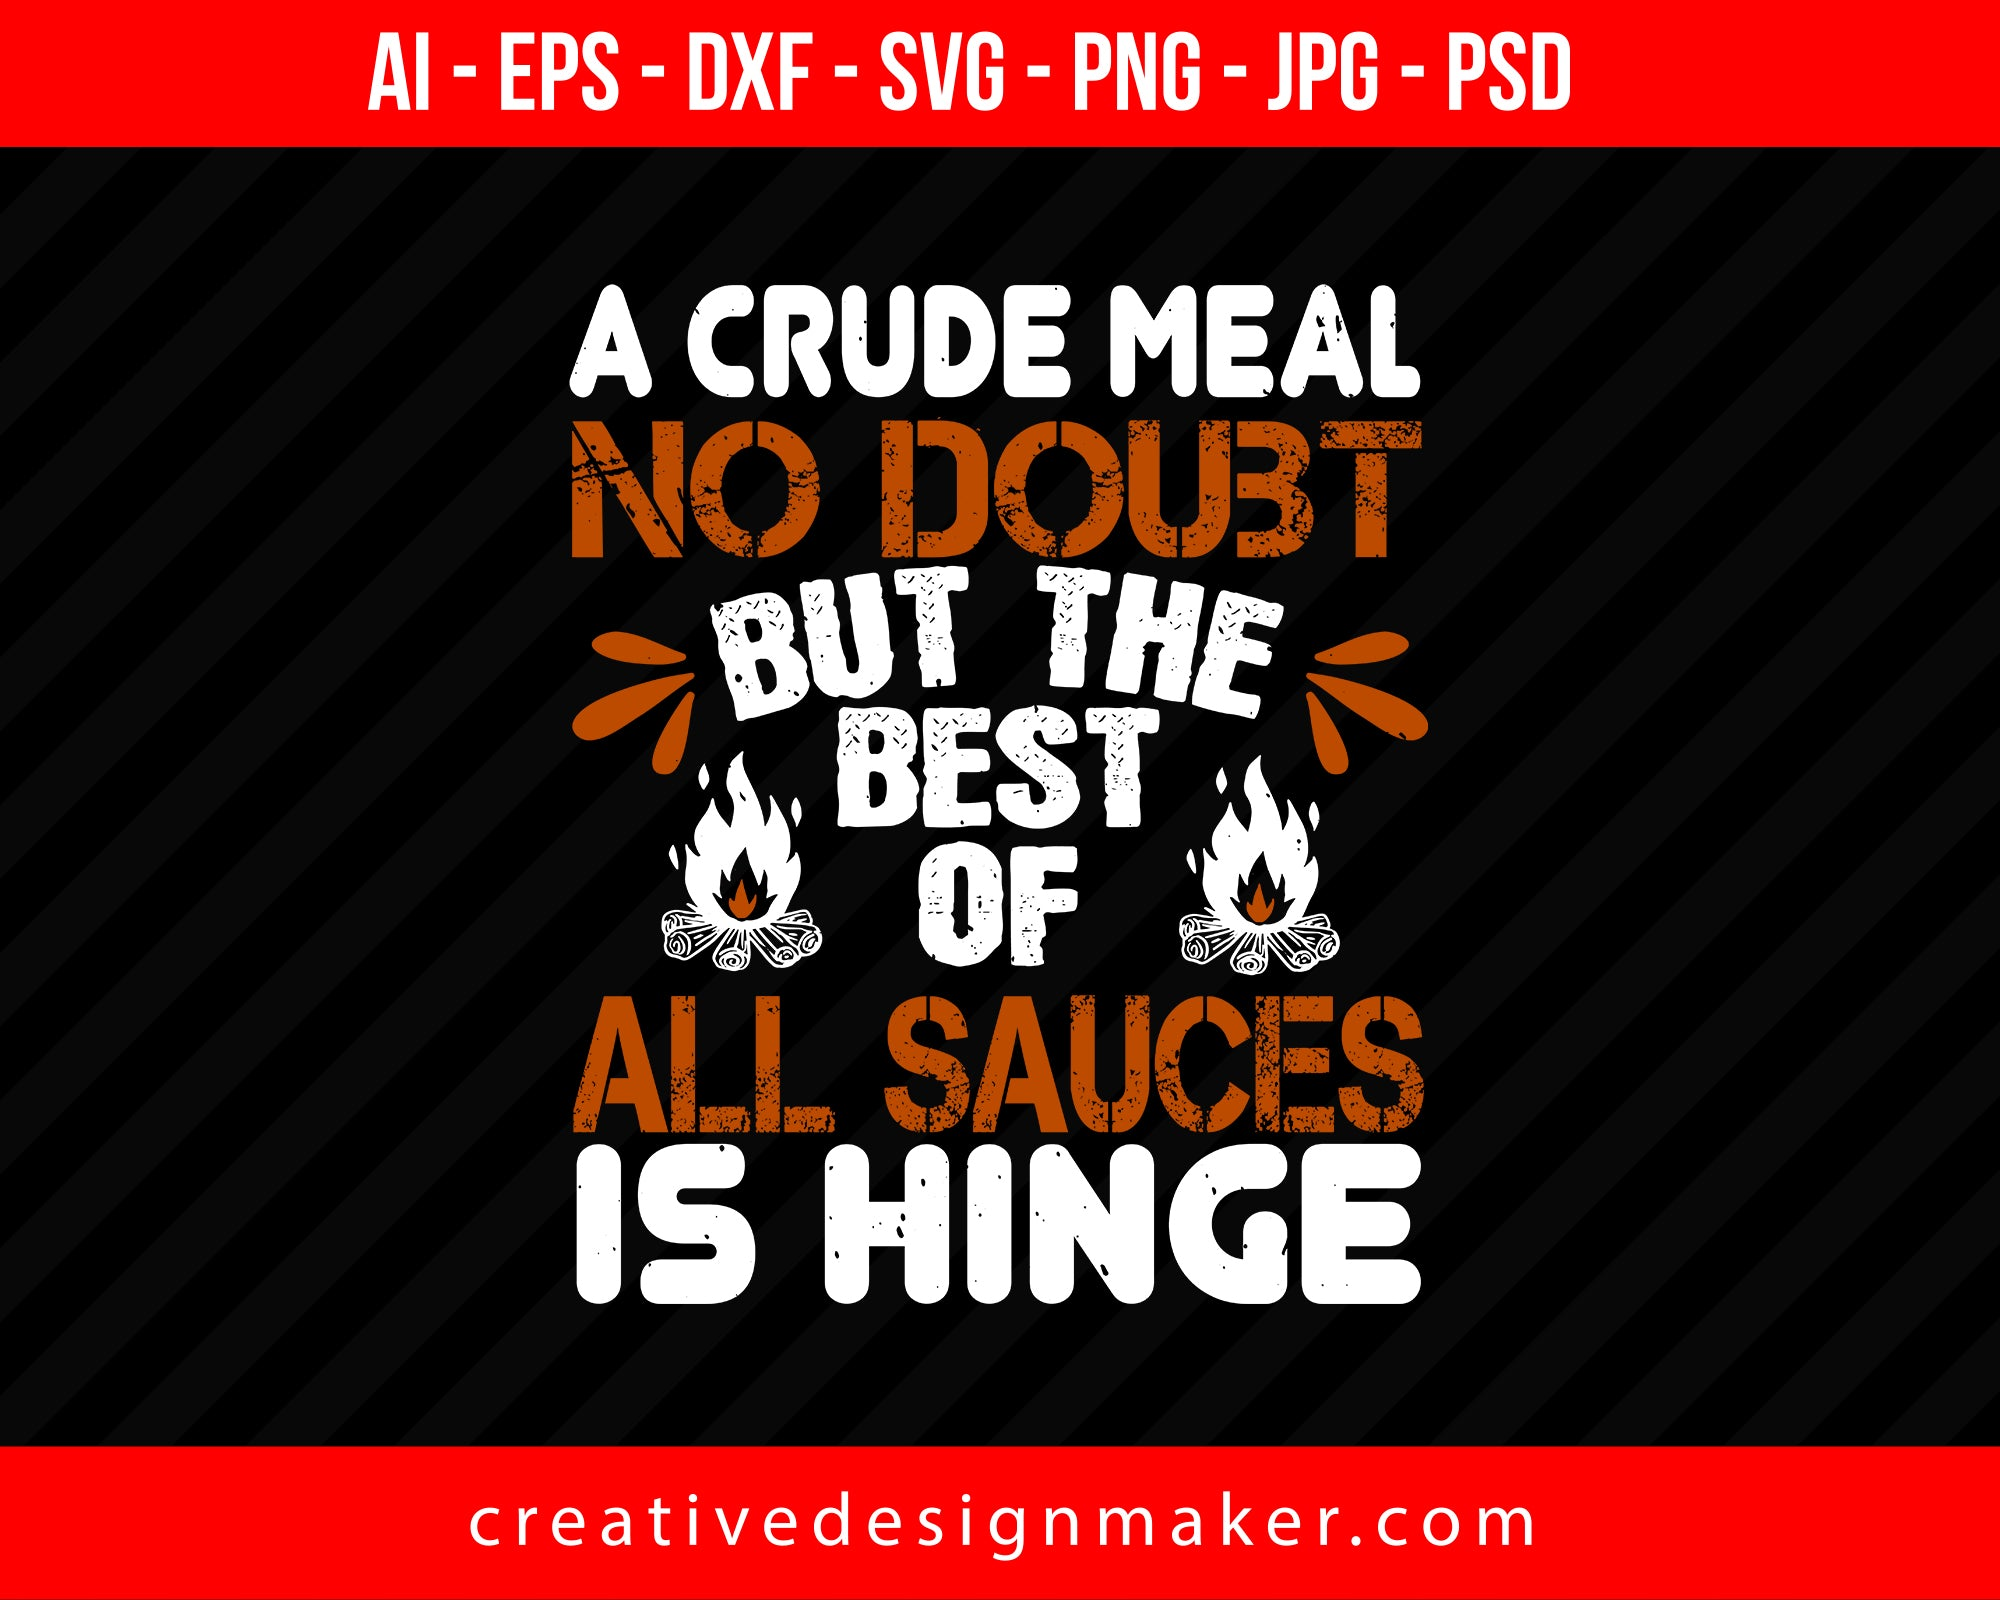 A Crude Meal, No Doubt, But The Best Of All Sauces Is Hinge Hiking Print Ready Editable T-Shirt SVG Design!